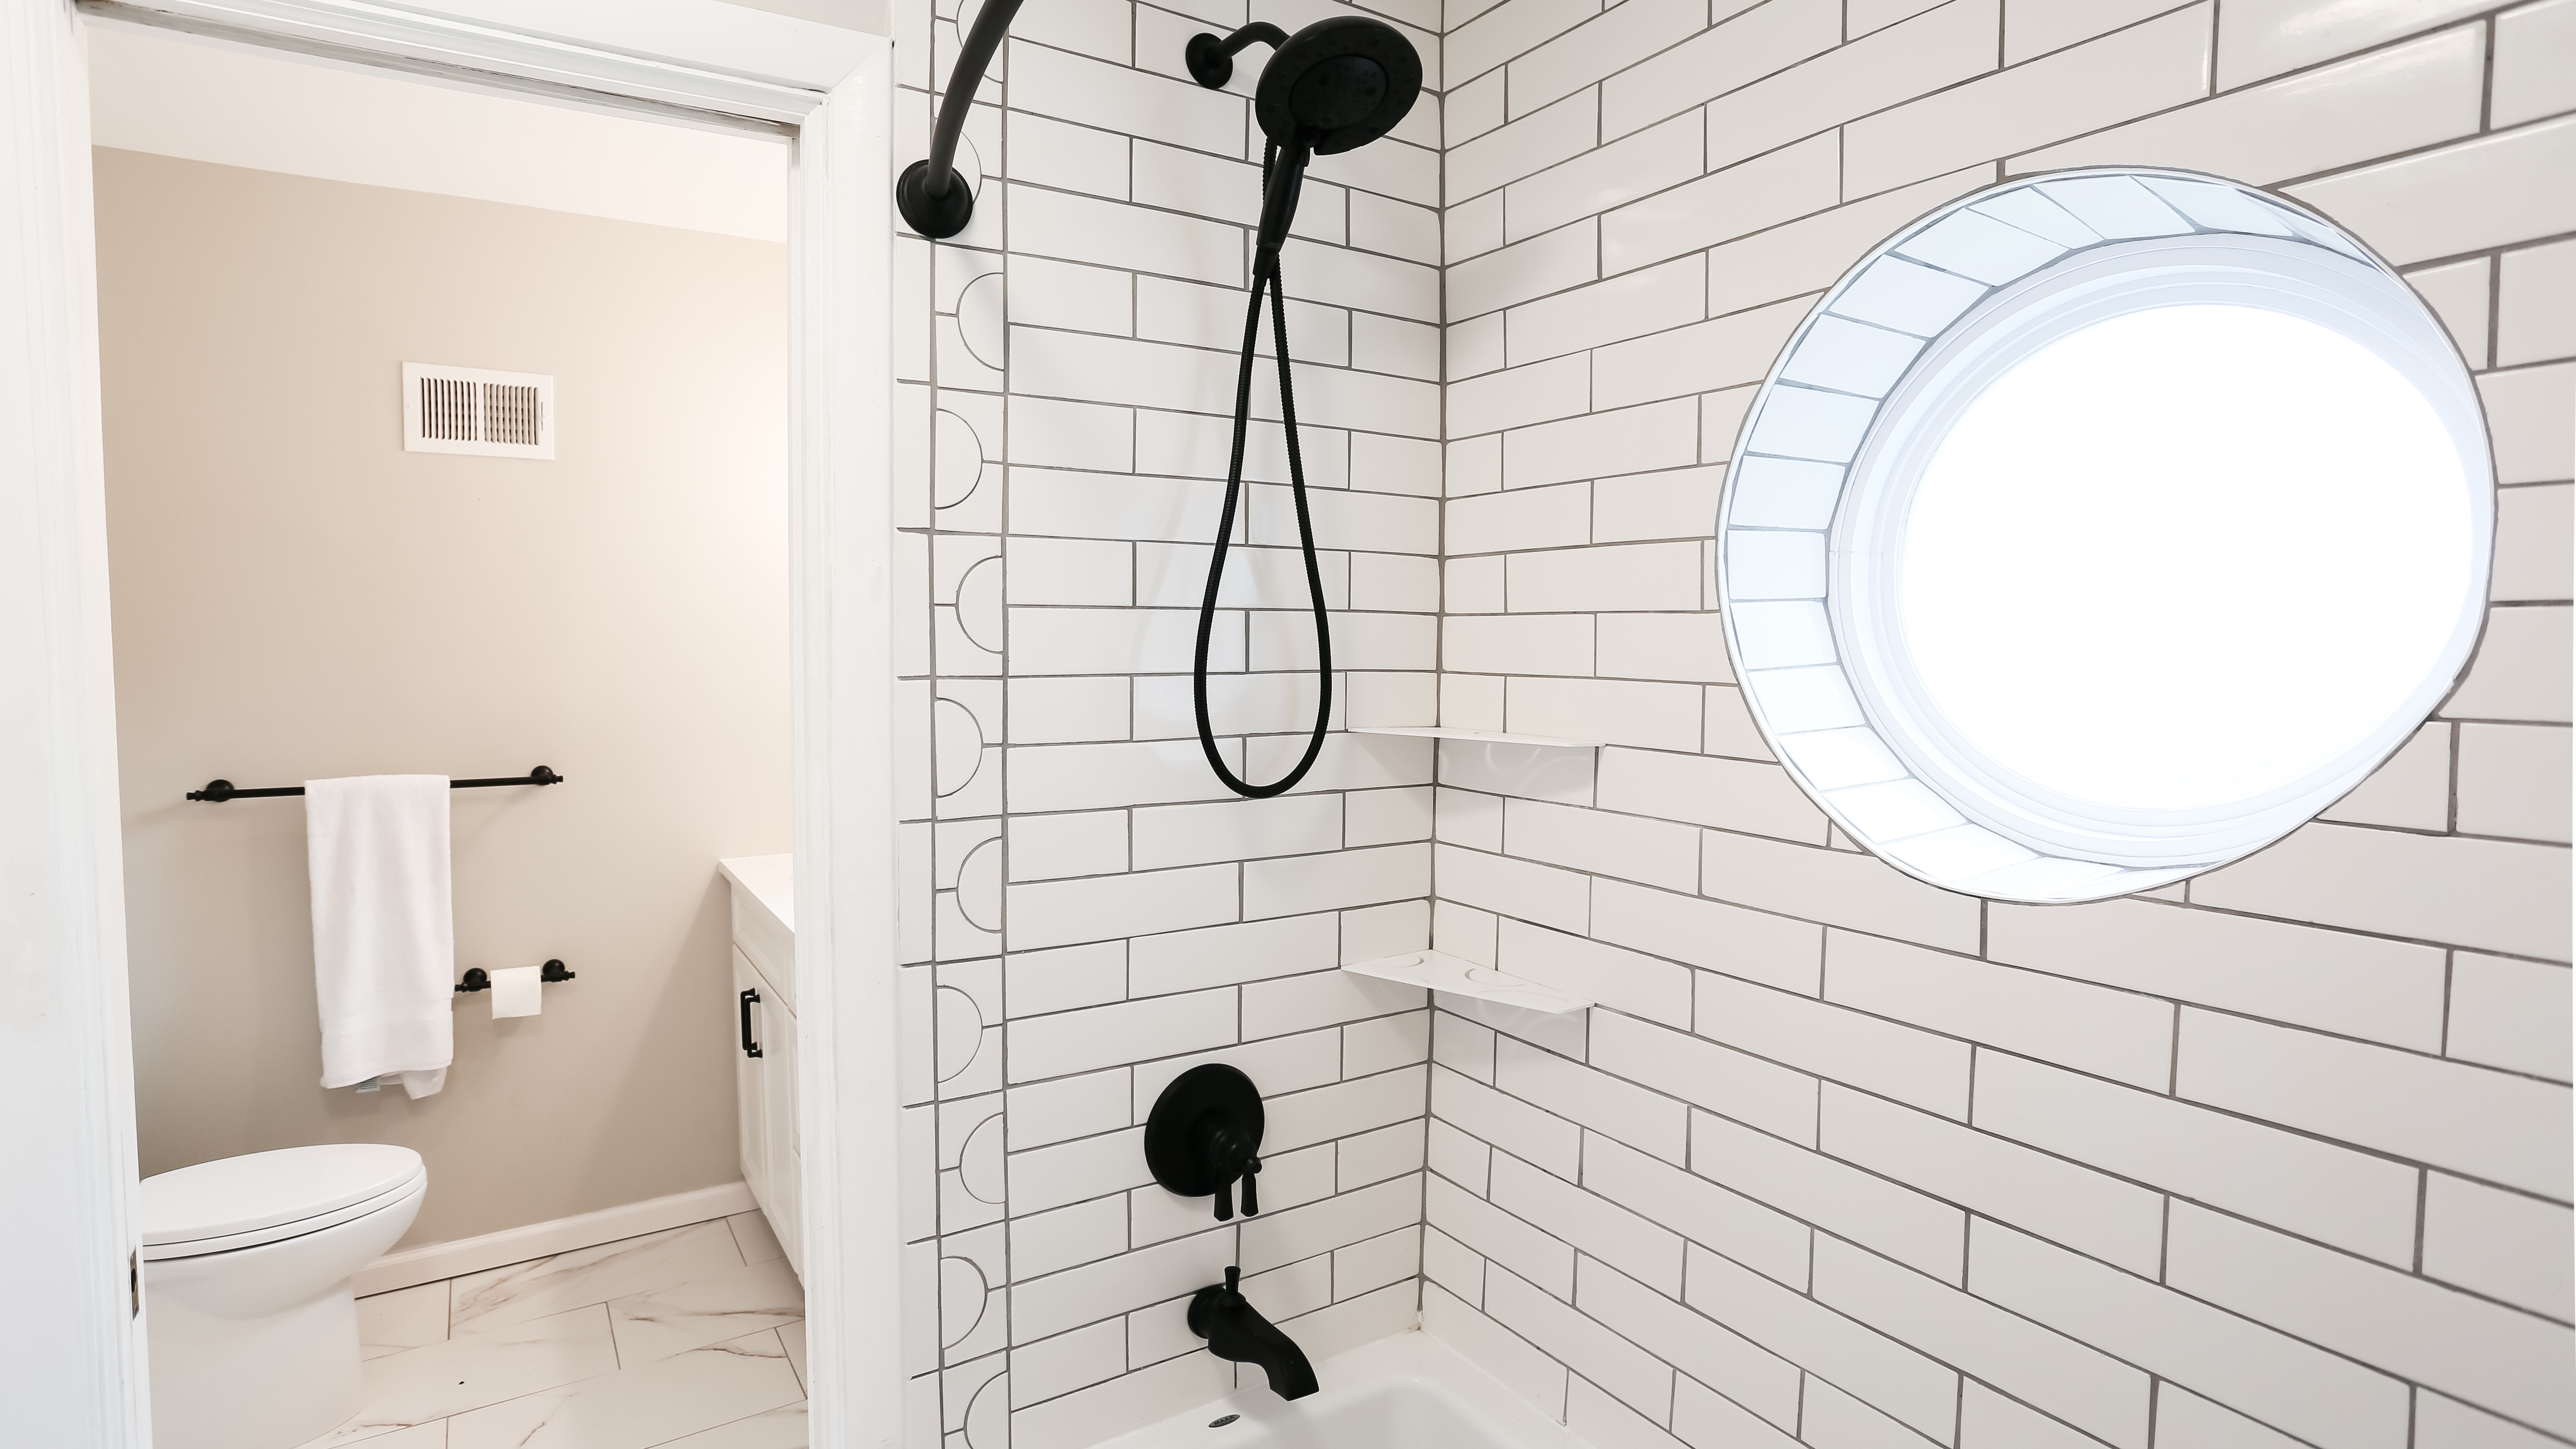 An outdated bathroom gets updated